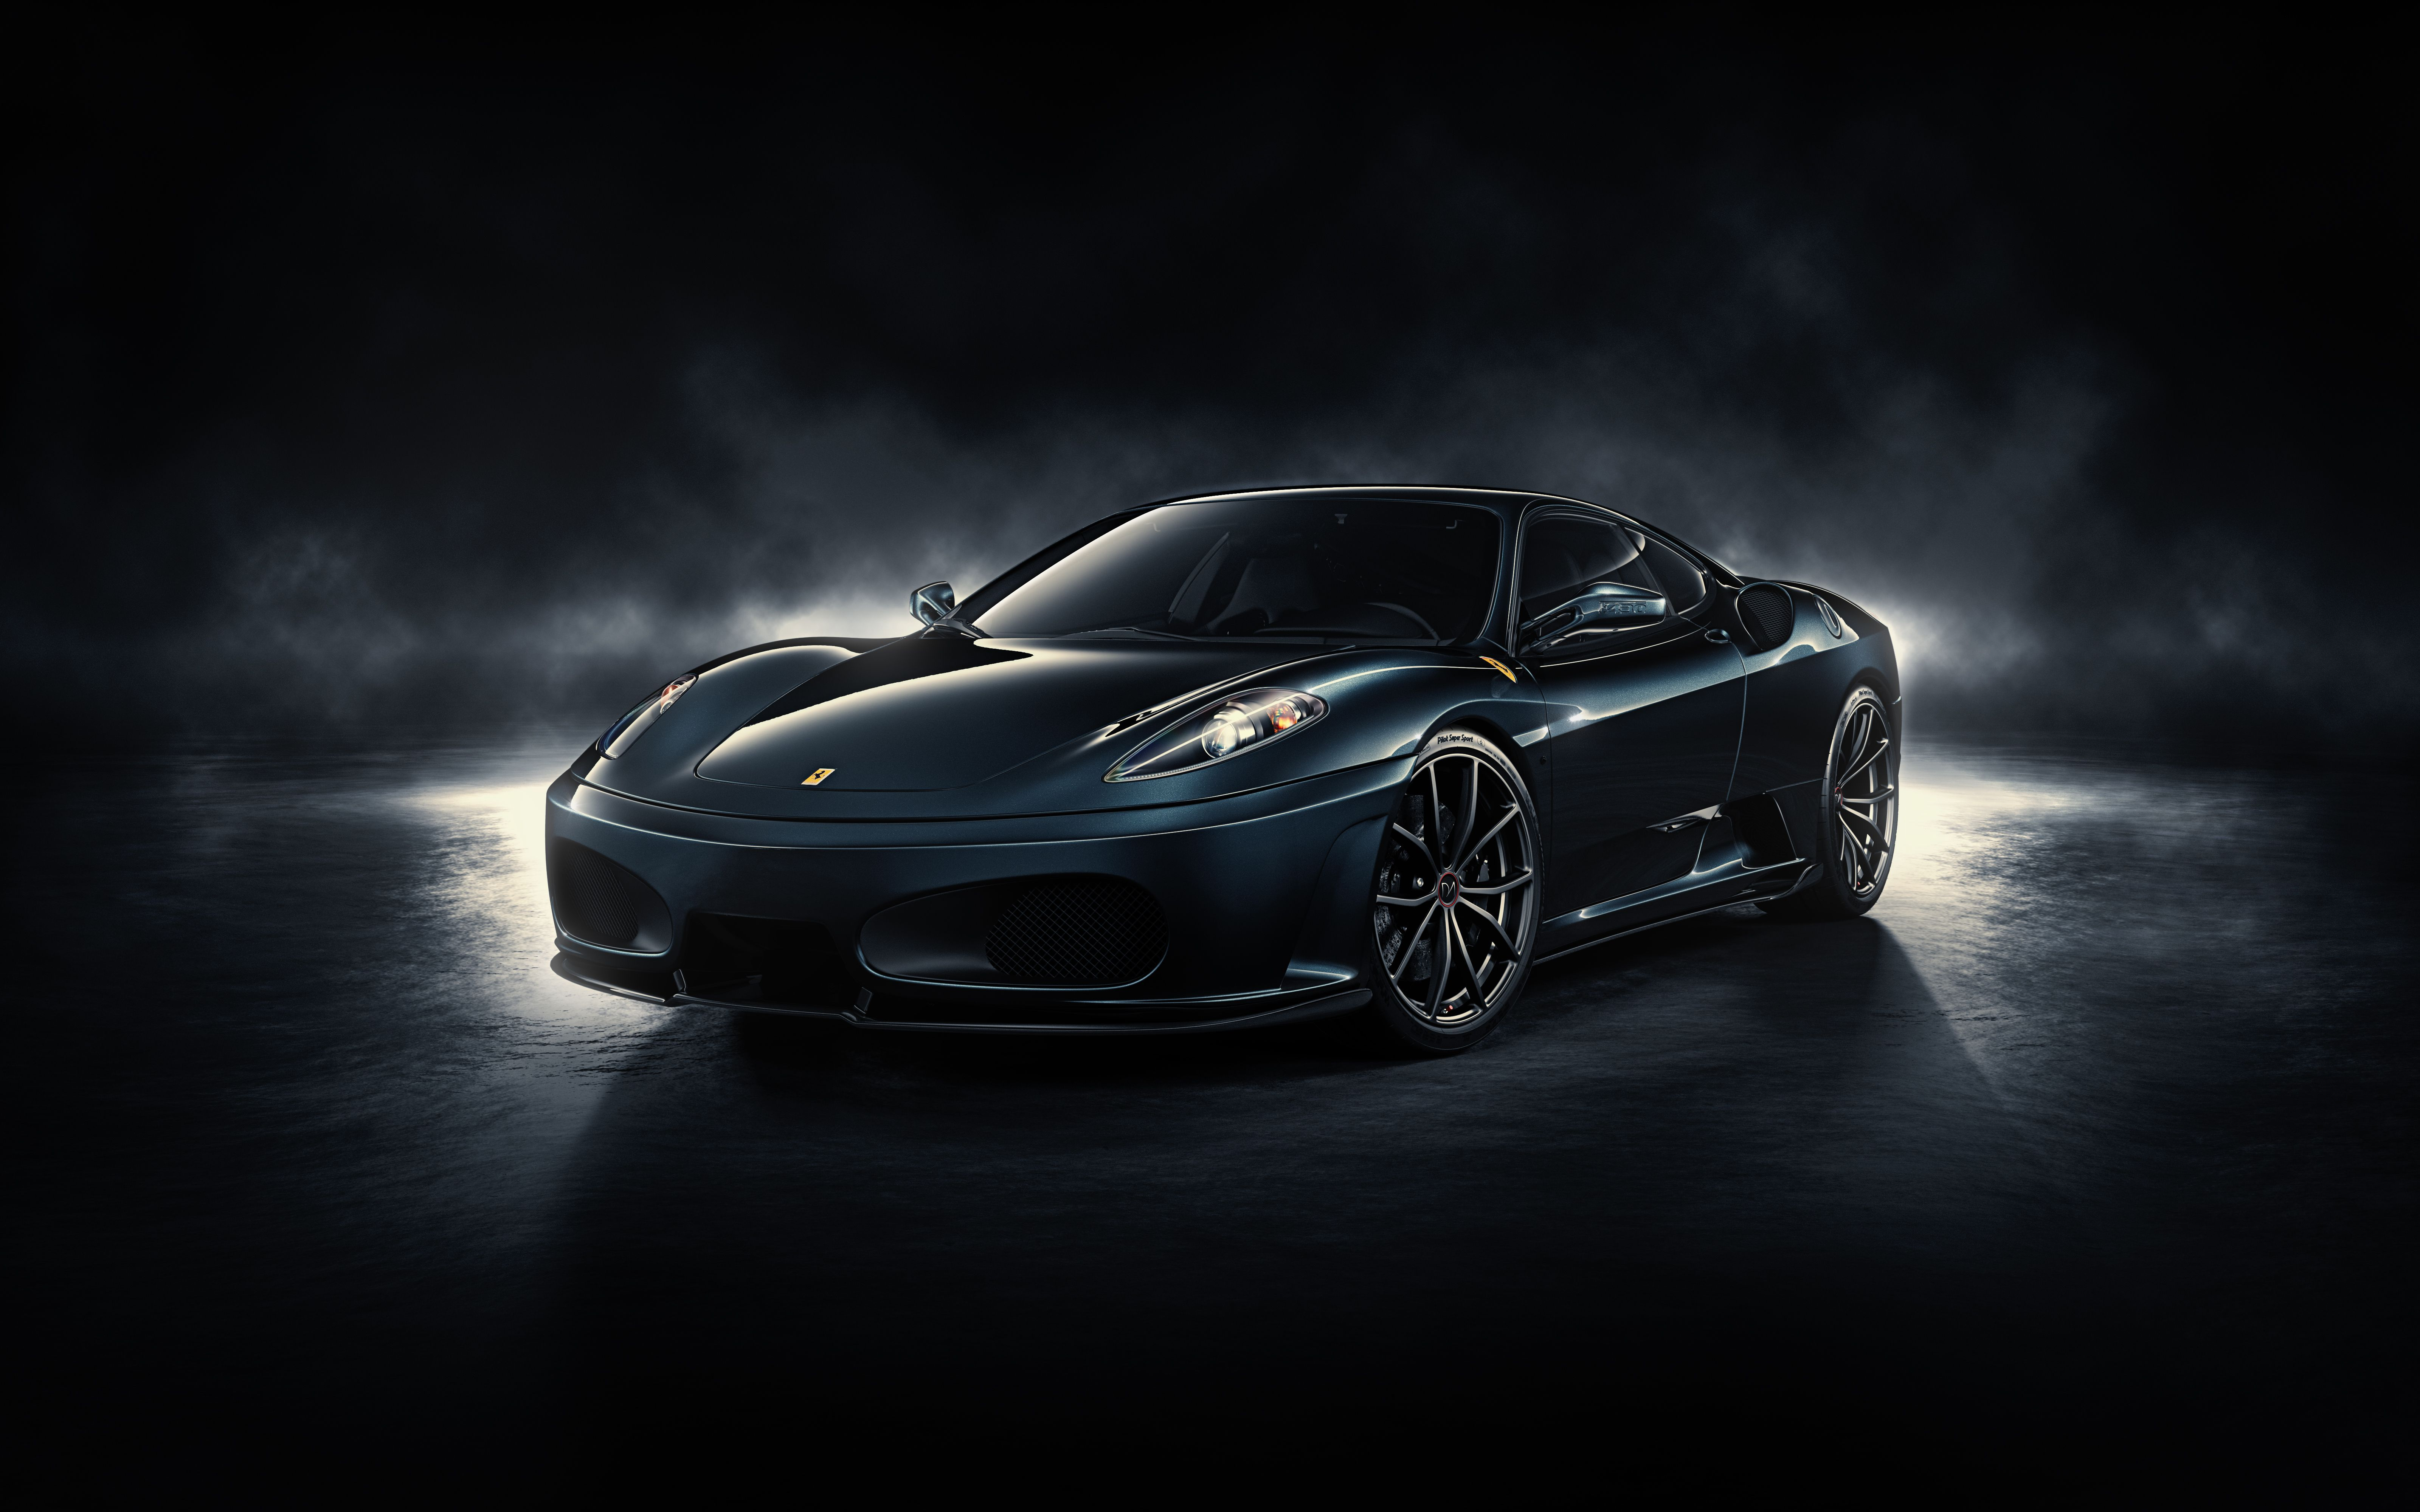 Black Ferrari Cars Petsprin On In Colour Smart Of Picsity